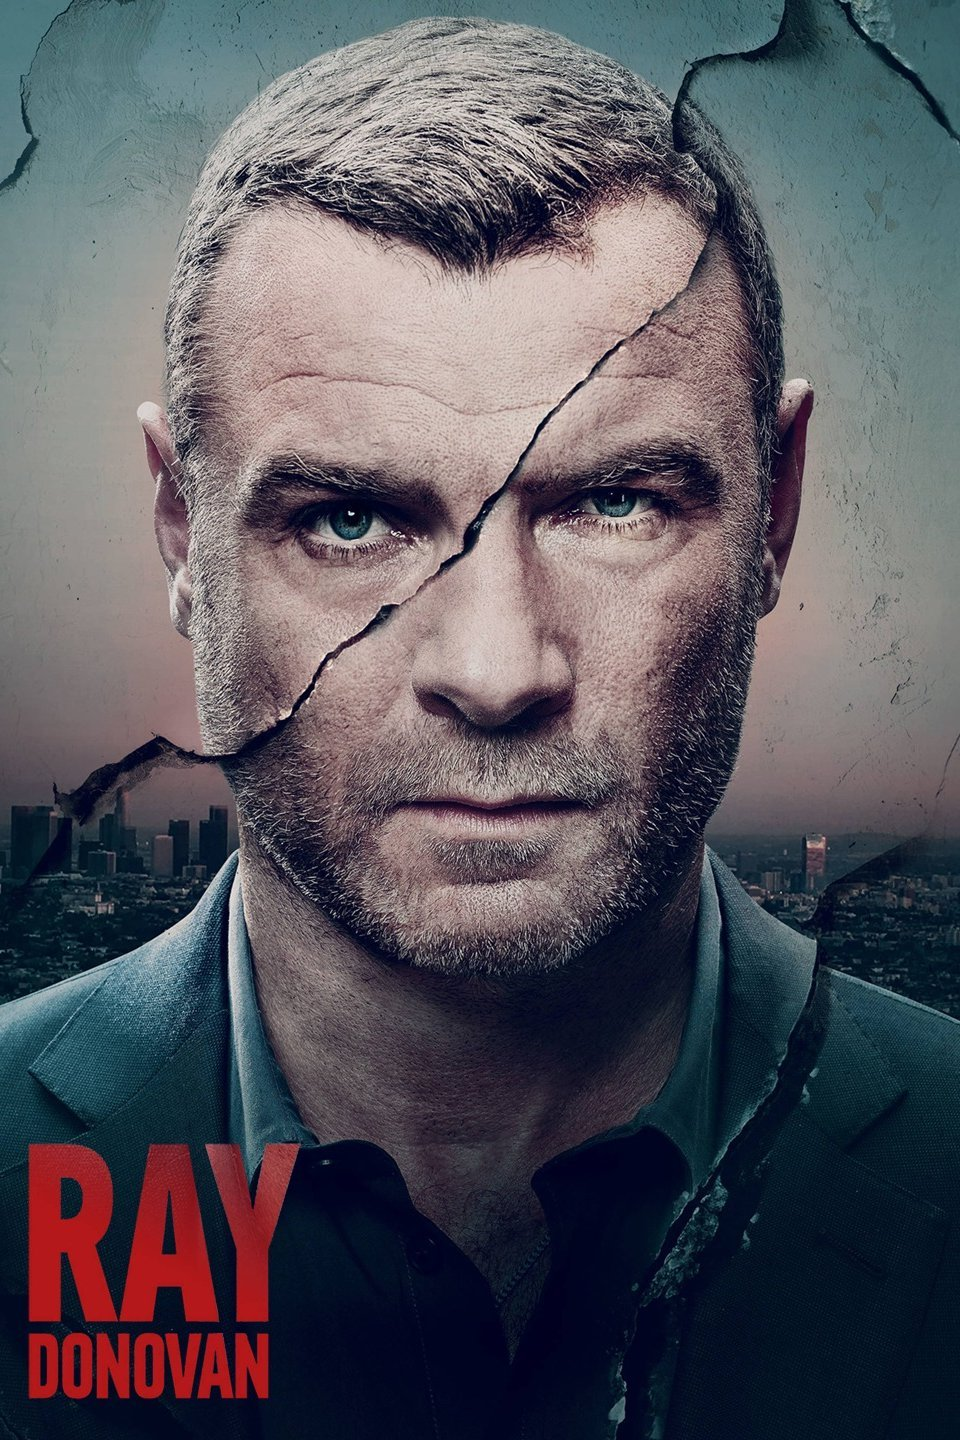 Ray Donovan Season 5 Episode 3 HDTV Micromkv